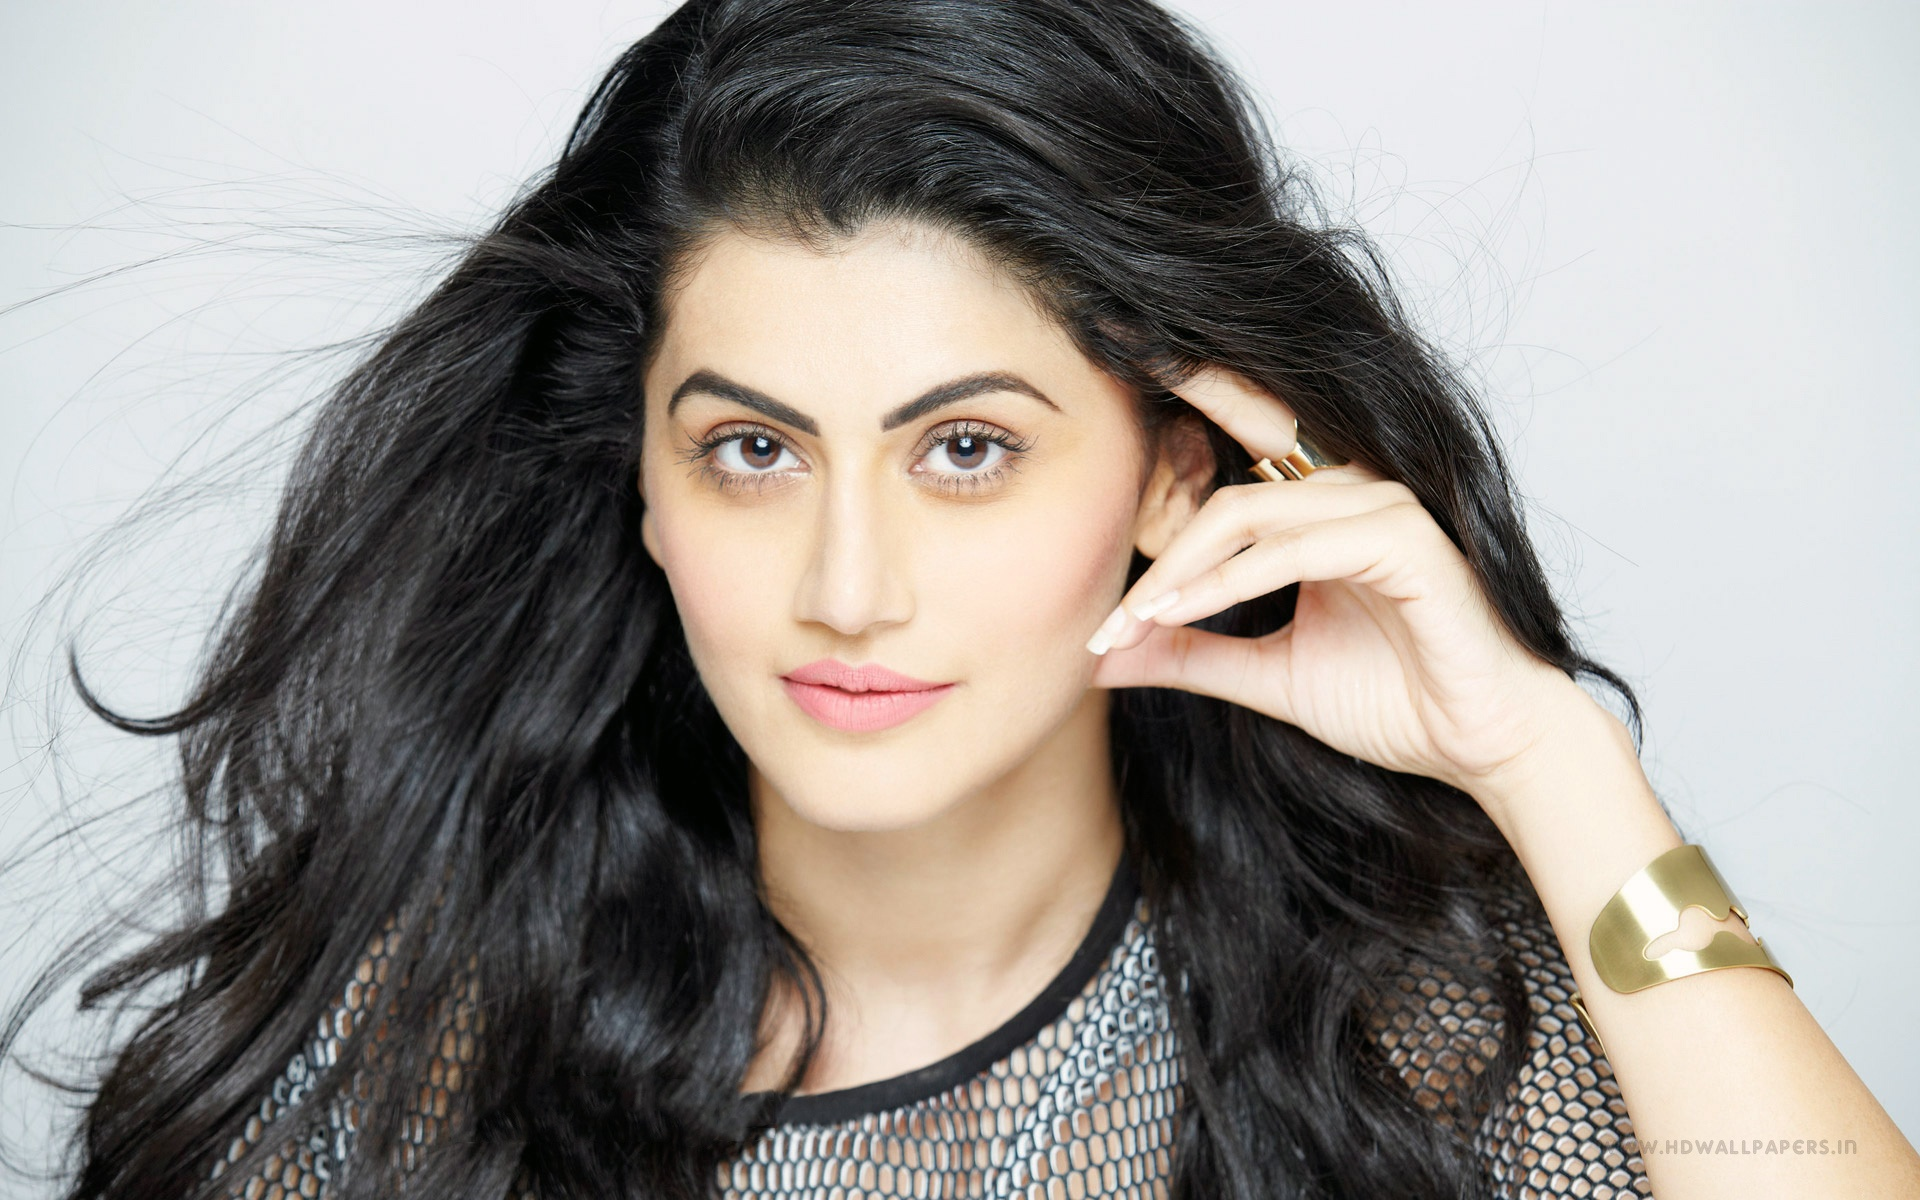 taapsee pannu indian actress wallpapers in jpg format for free download